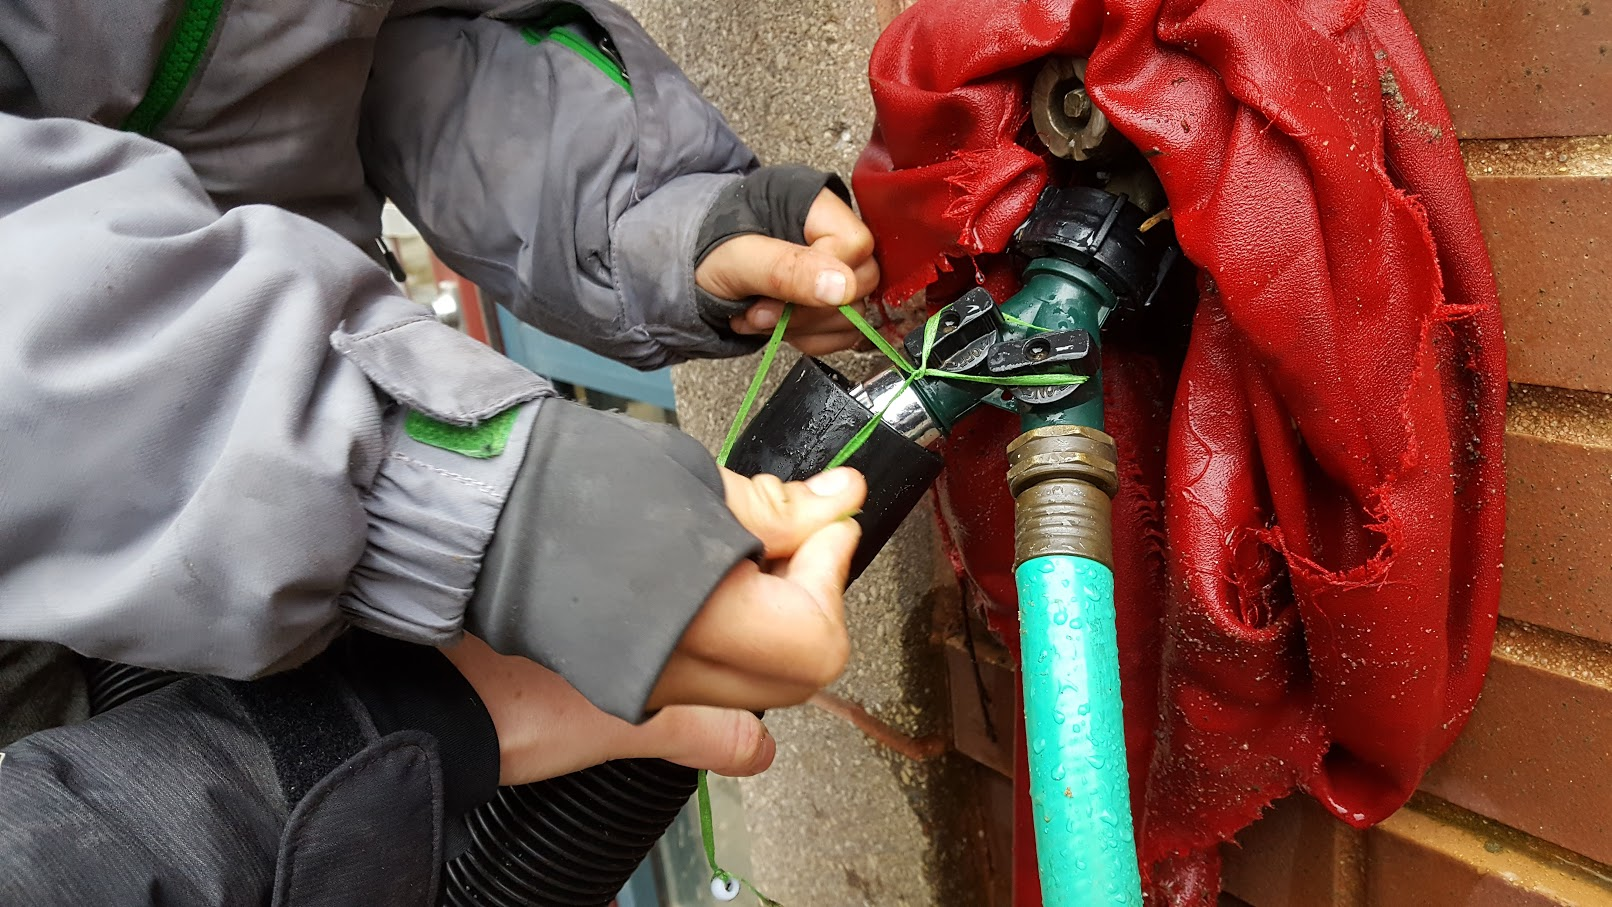 Closeup of a hose attached to a faucet on a brick and concrete wall. a child's hands maneuver some string around the knobs of the faucet.